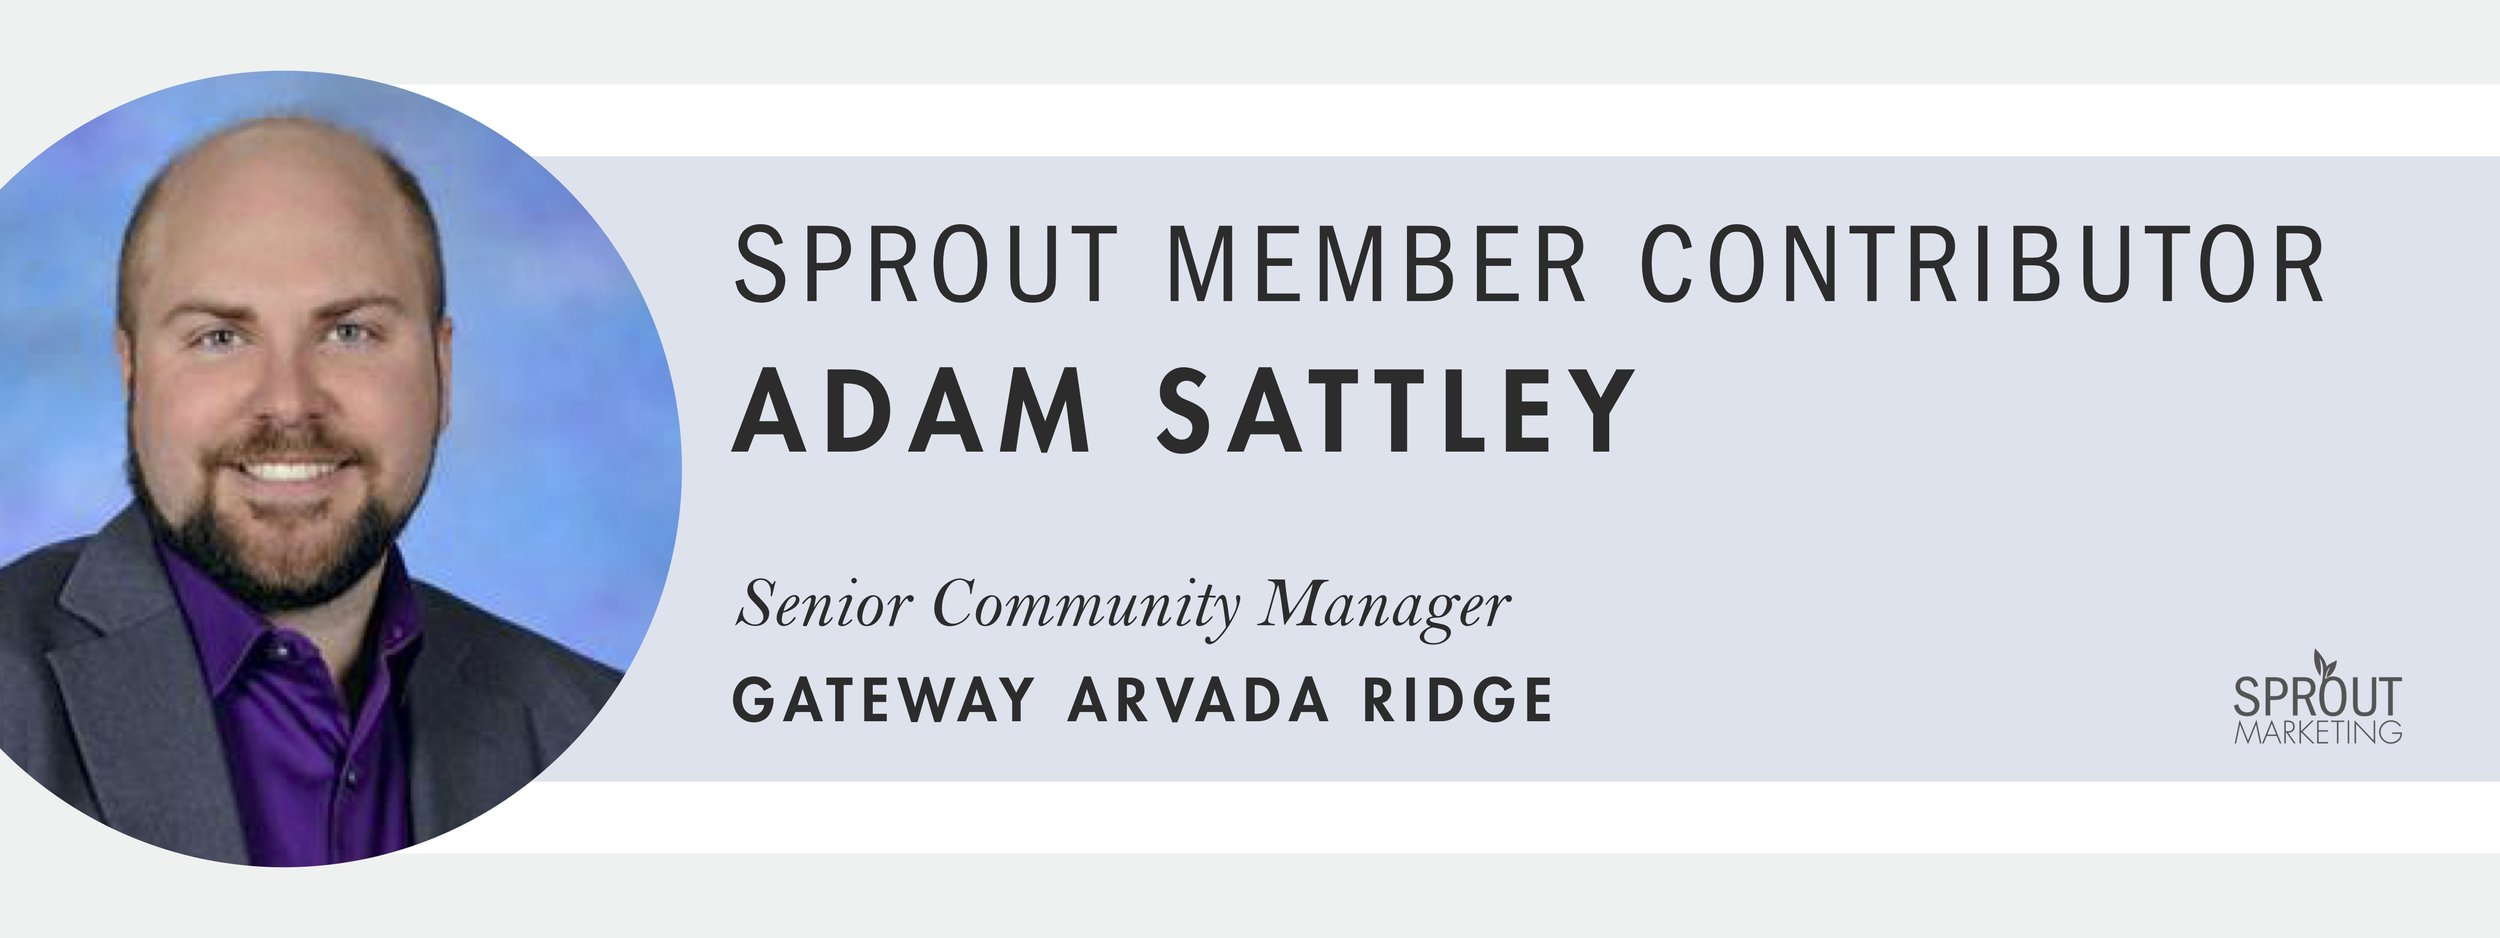 Adam Sattley Banner.jpg